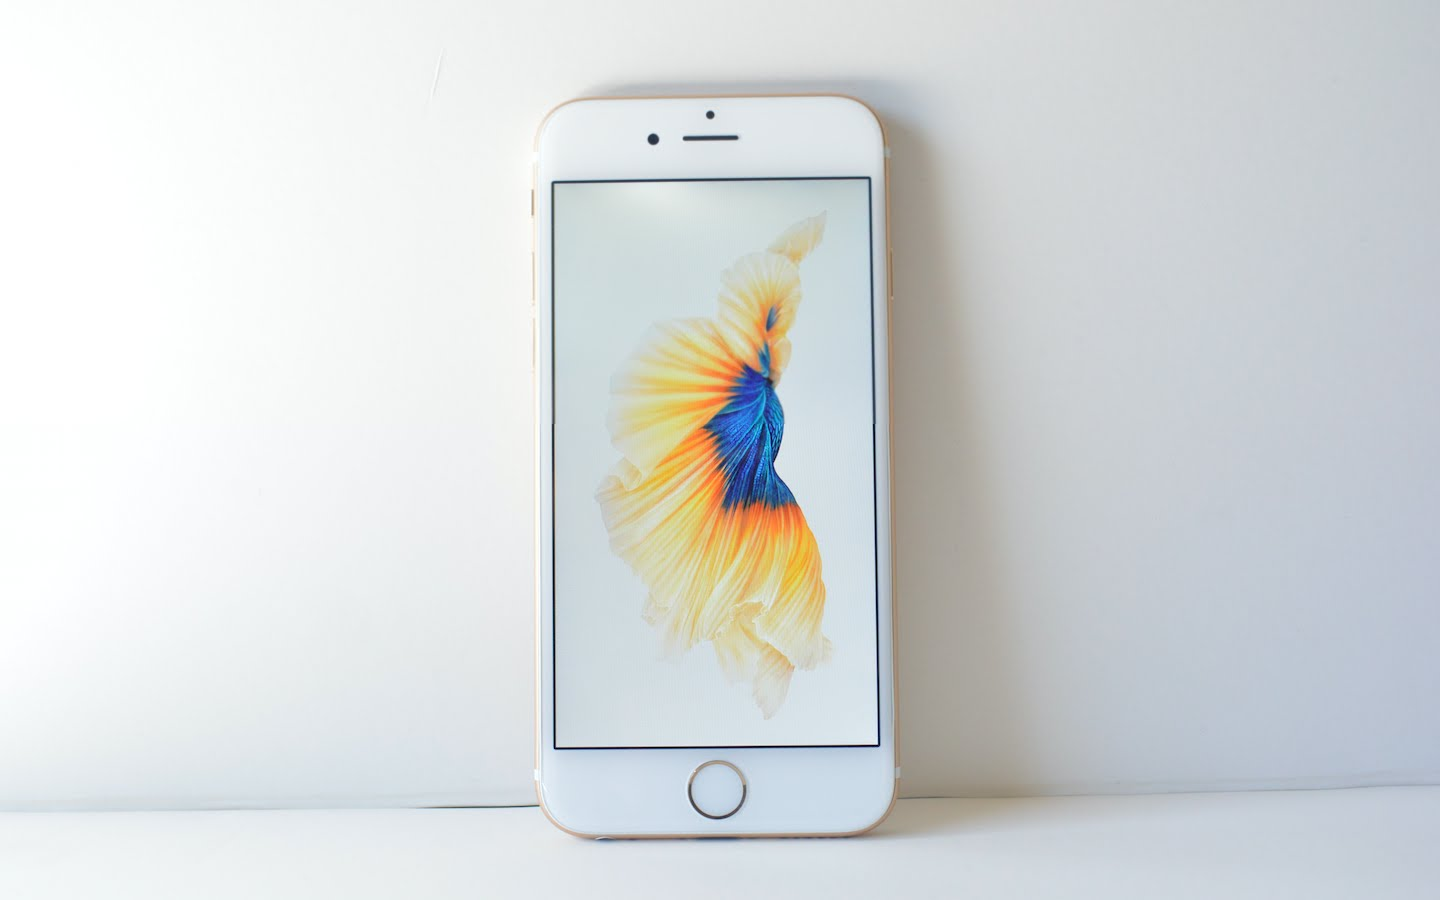 iPhone 6S Dynamic Wallpapers Still Versions 1440x900